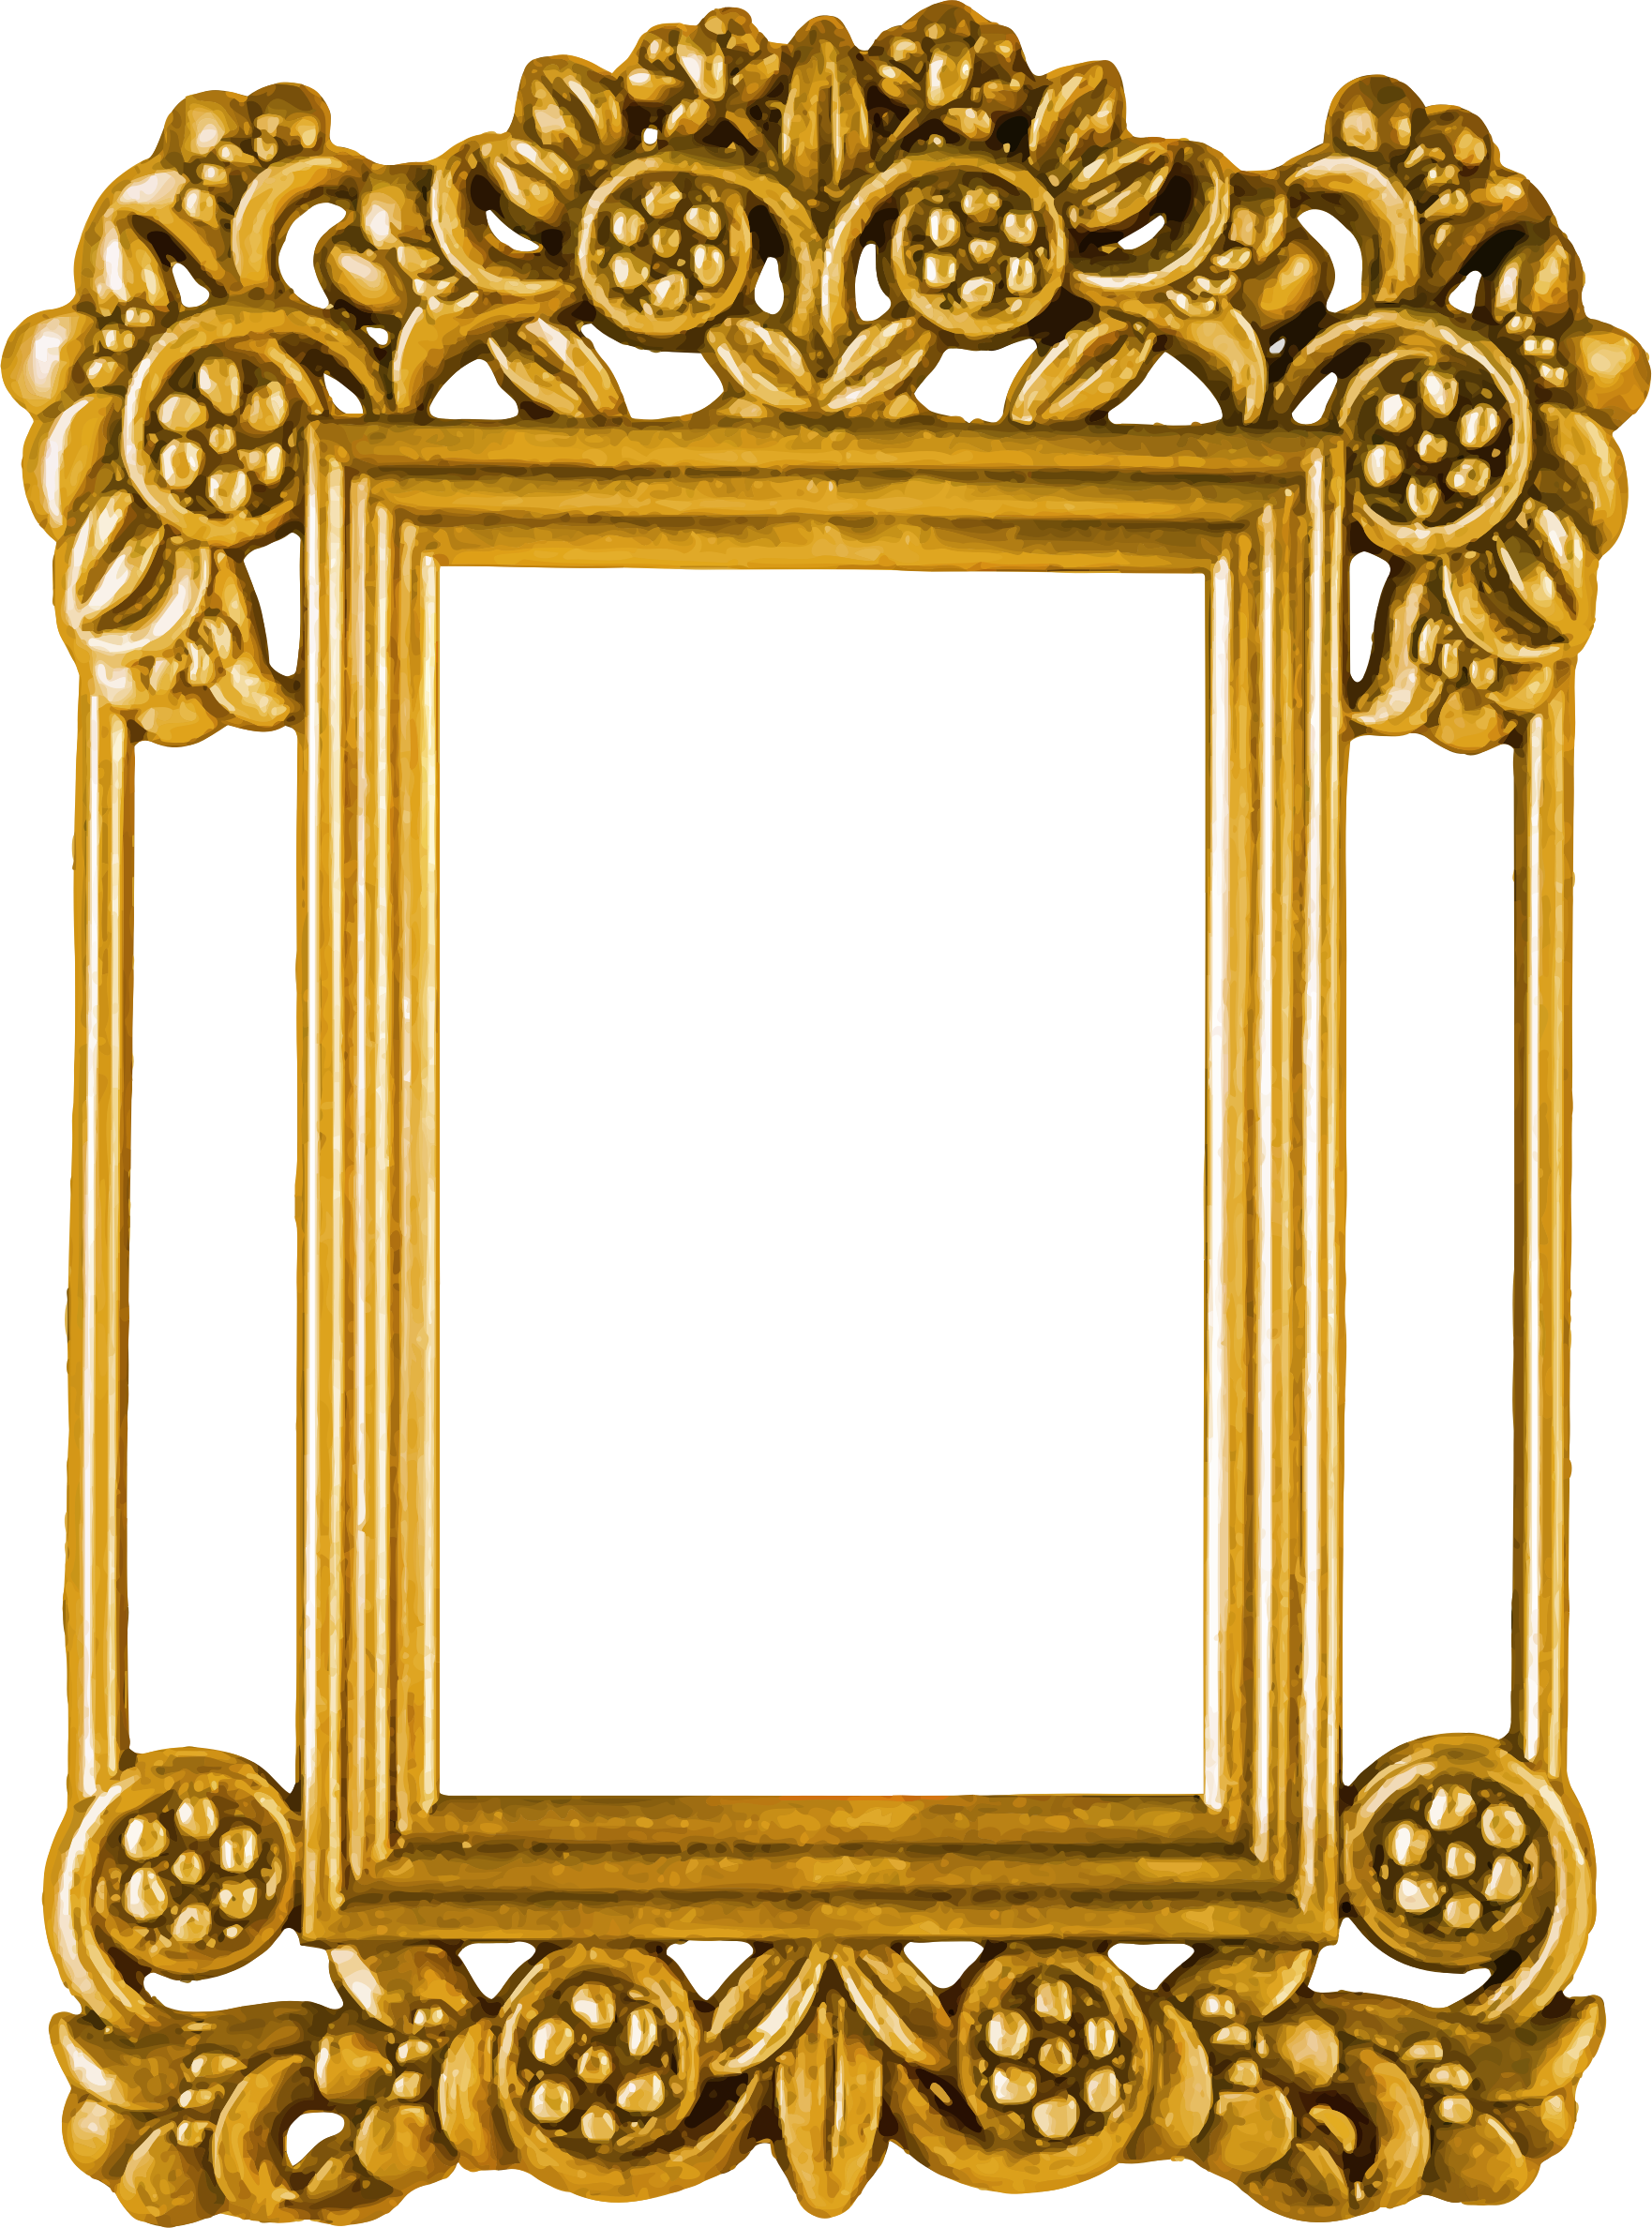 Ornate frame 42 (version 2) by Firkin